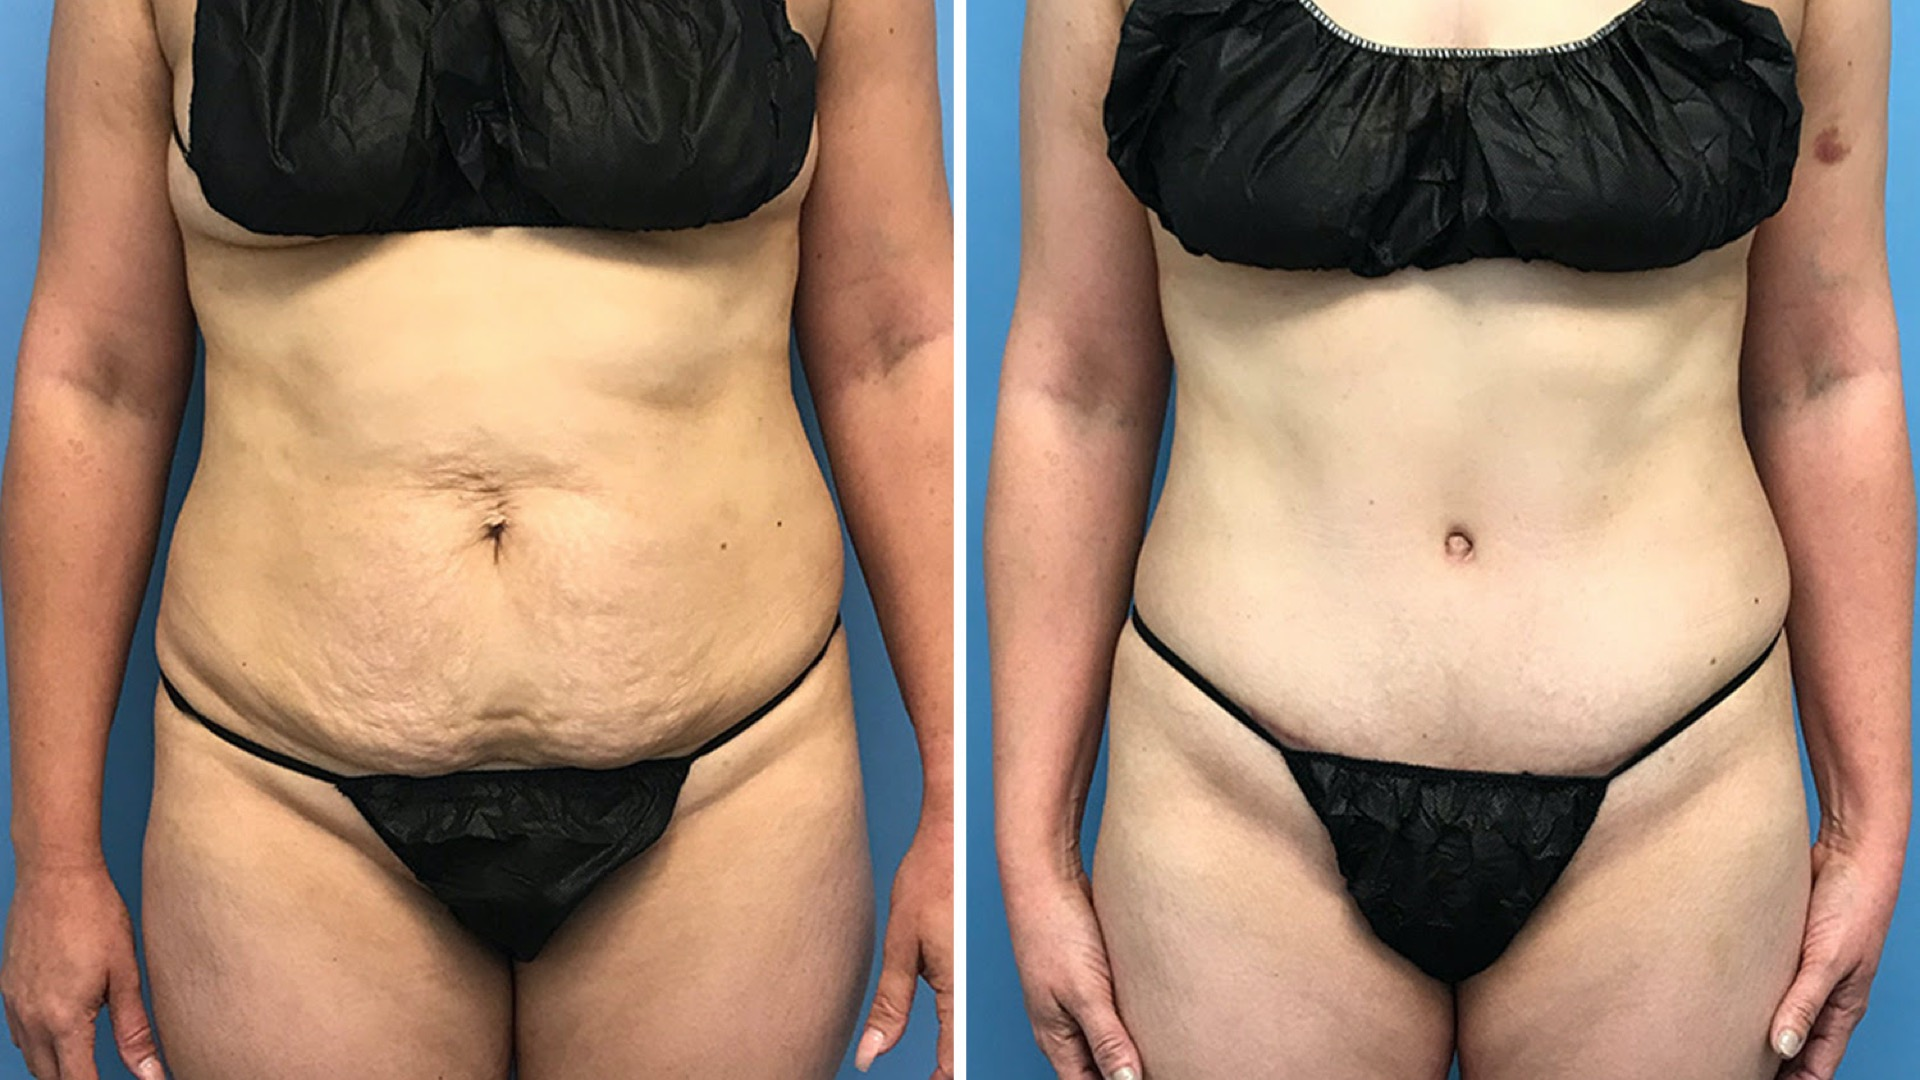 tummy tuck: everything you want to know